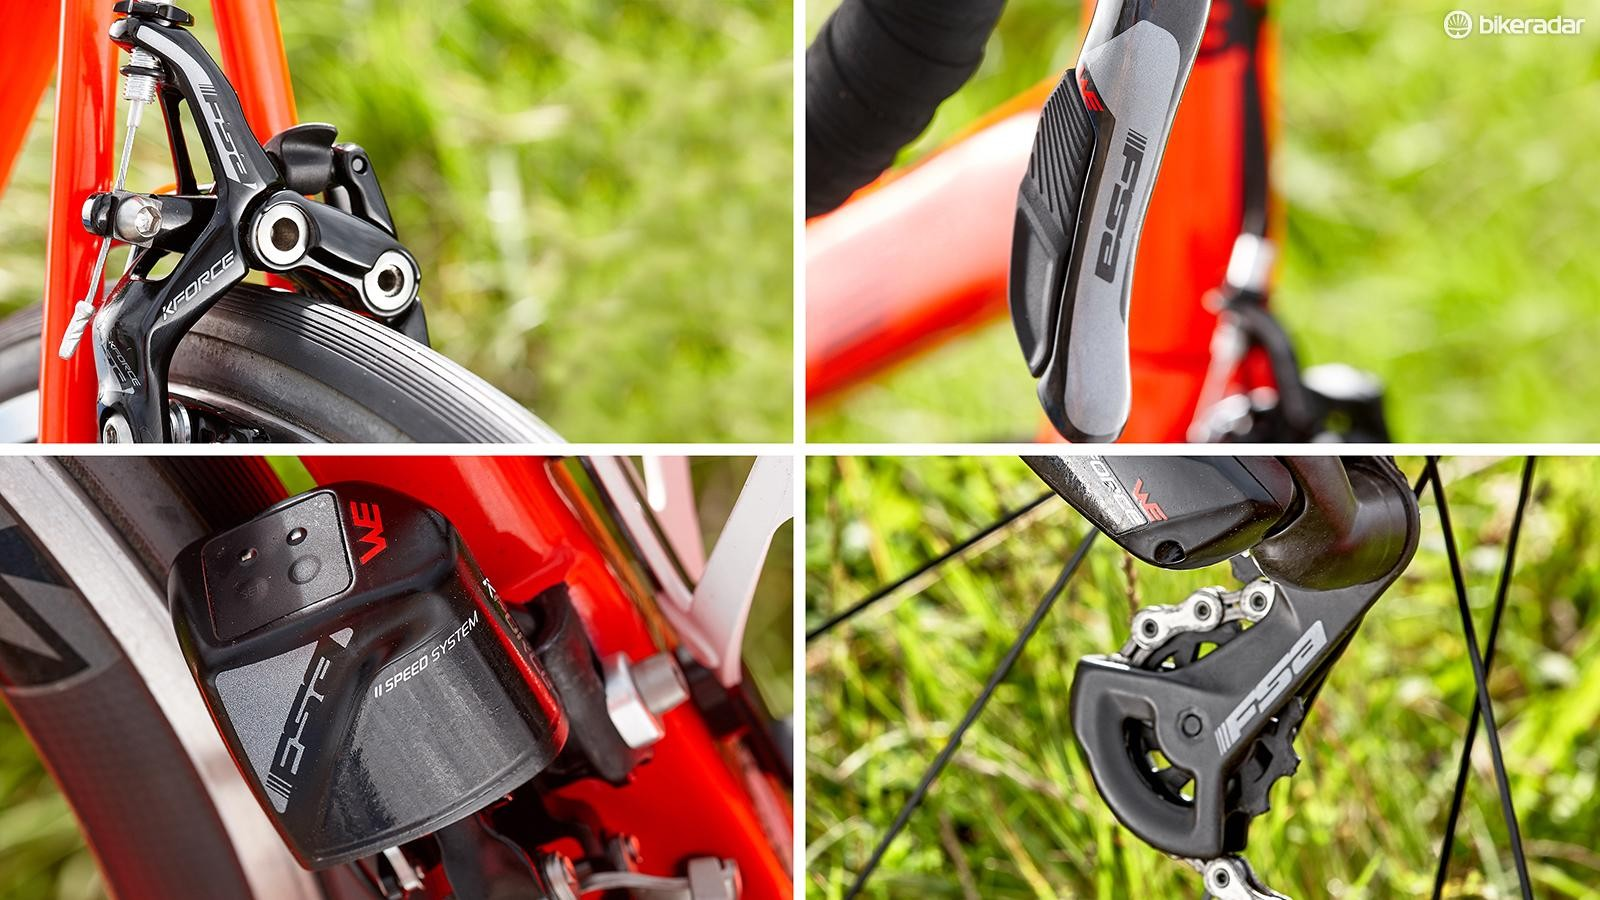 FSA K-Force WE electronic groupset